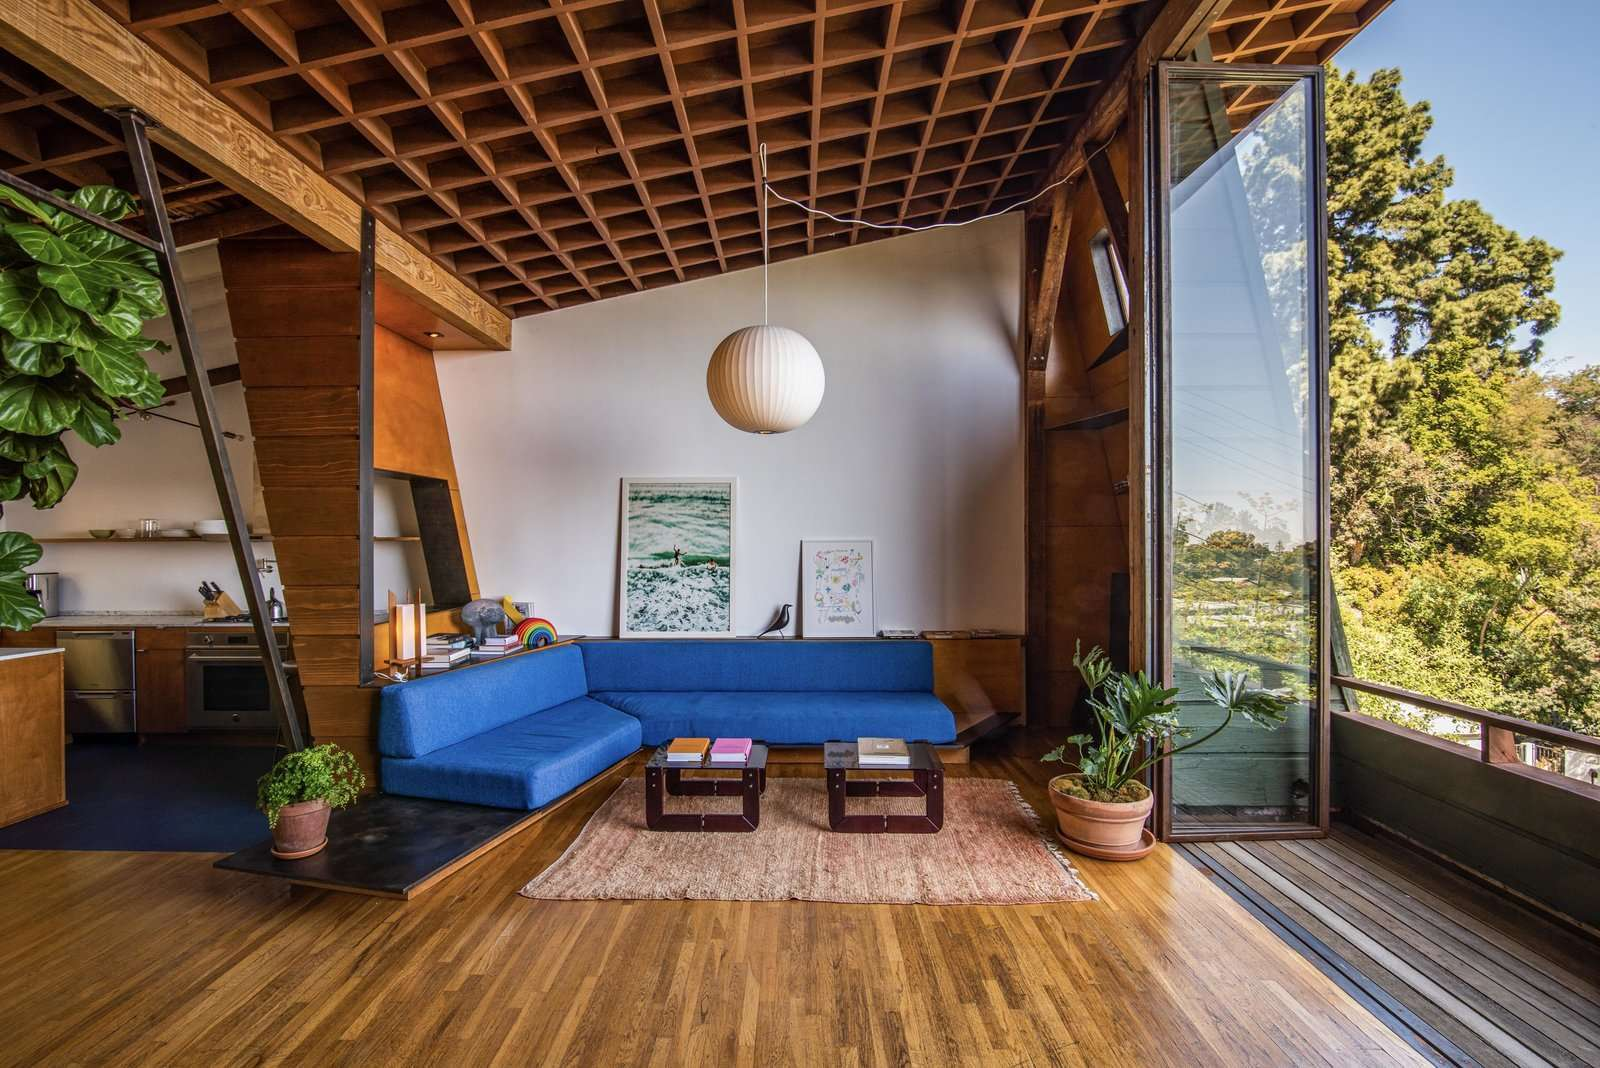 Recognized as Jones' first architectural masterpiece, the structure served as both his personal home and studio. Decades later, the duplex is now being offered as a boutique rental property.